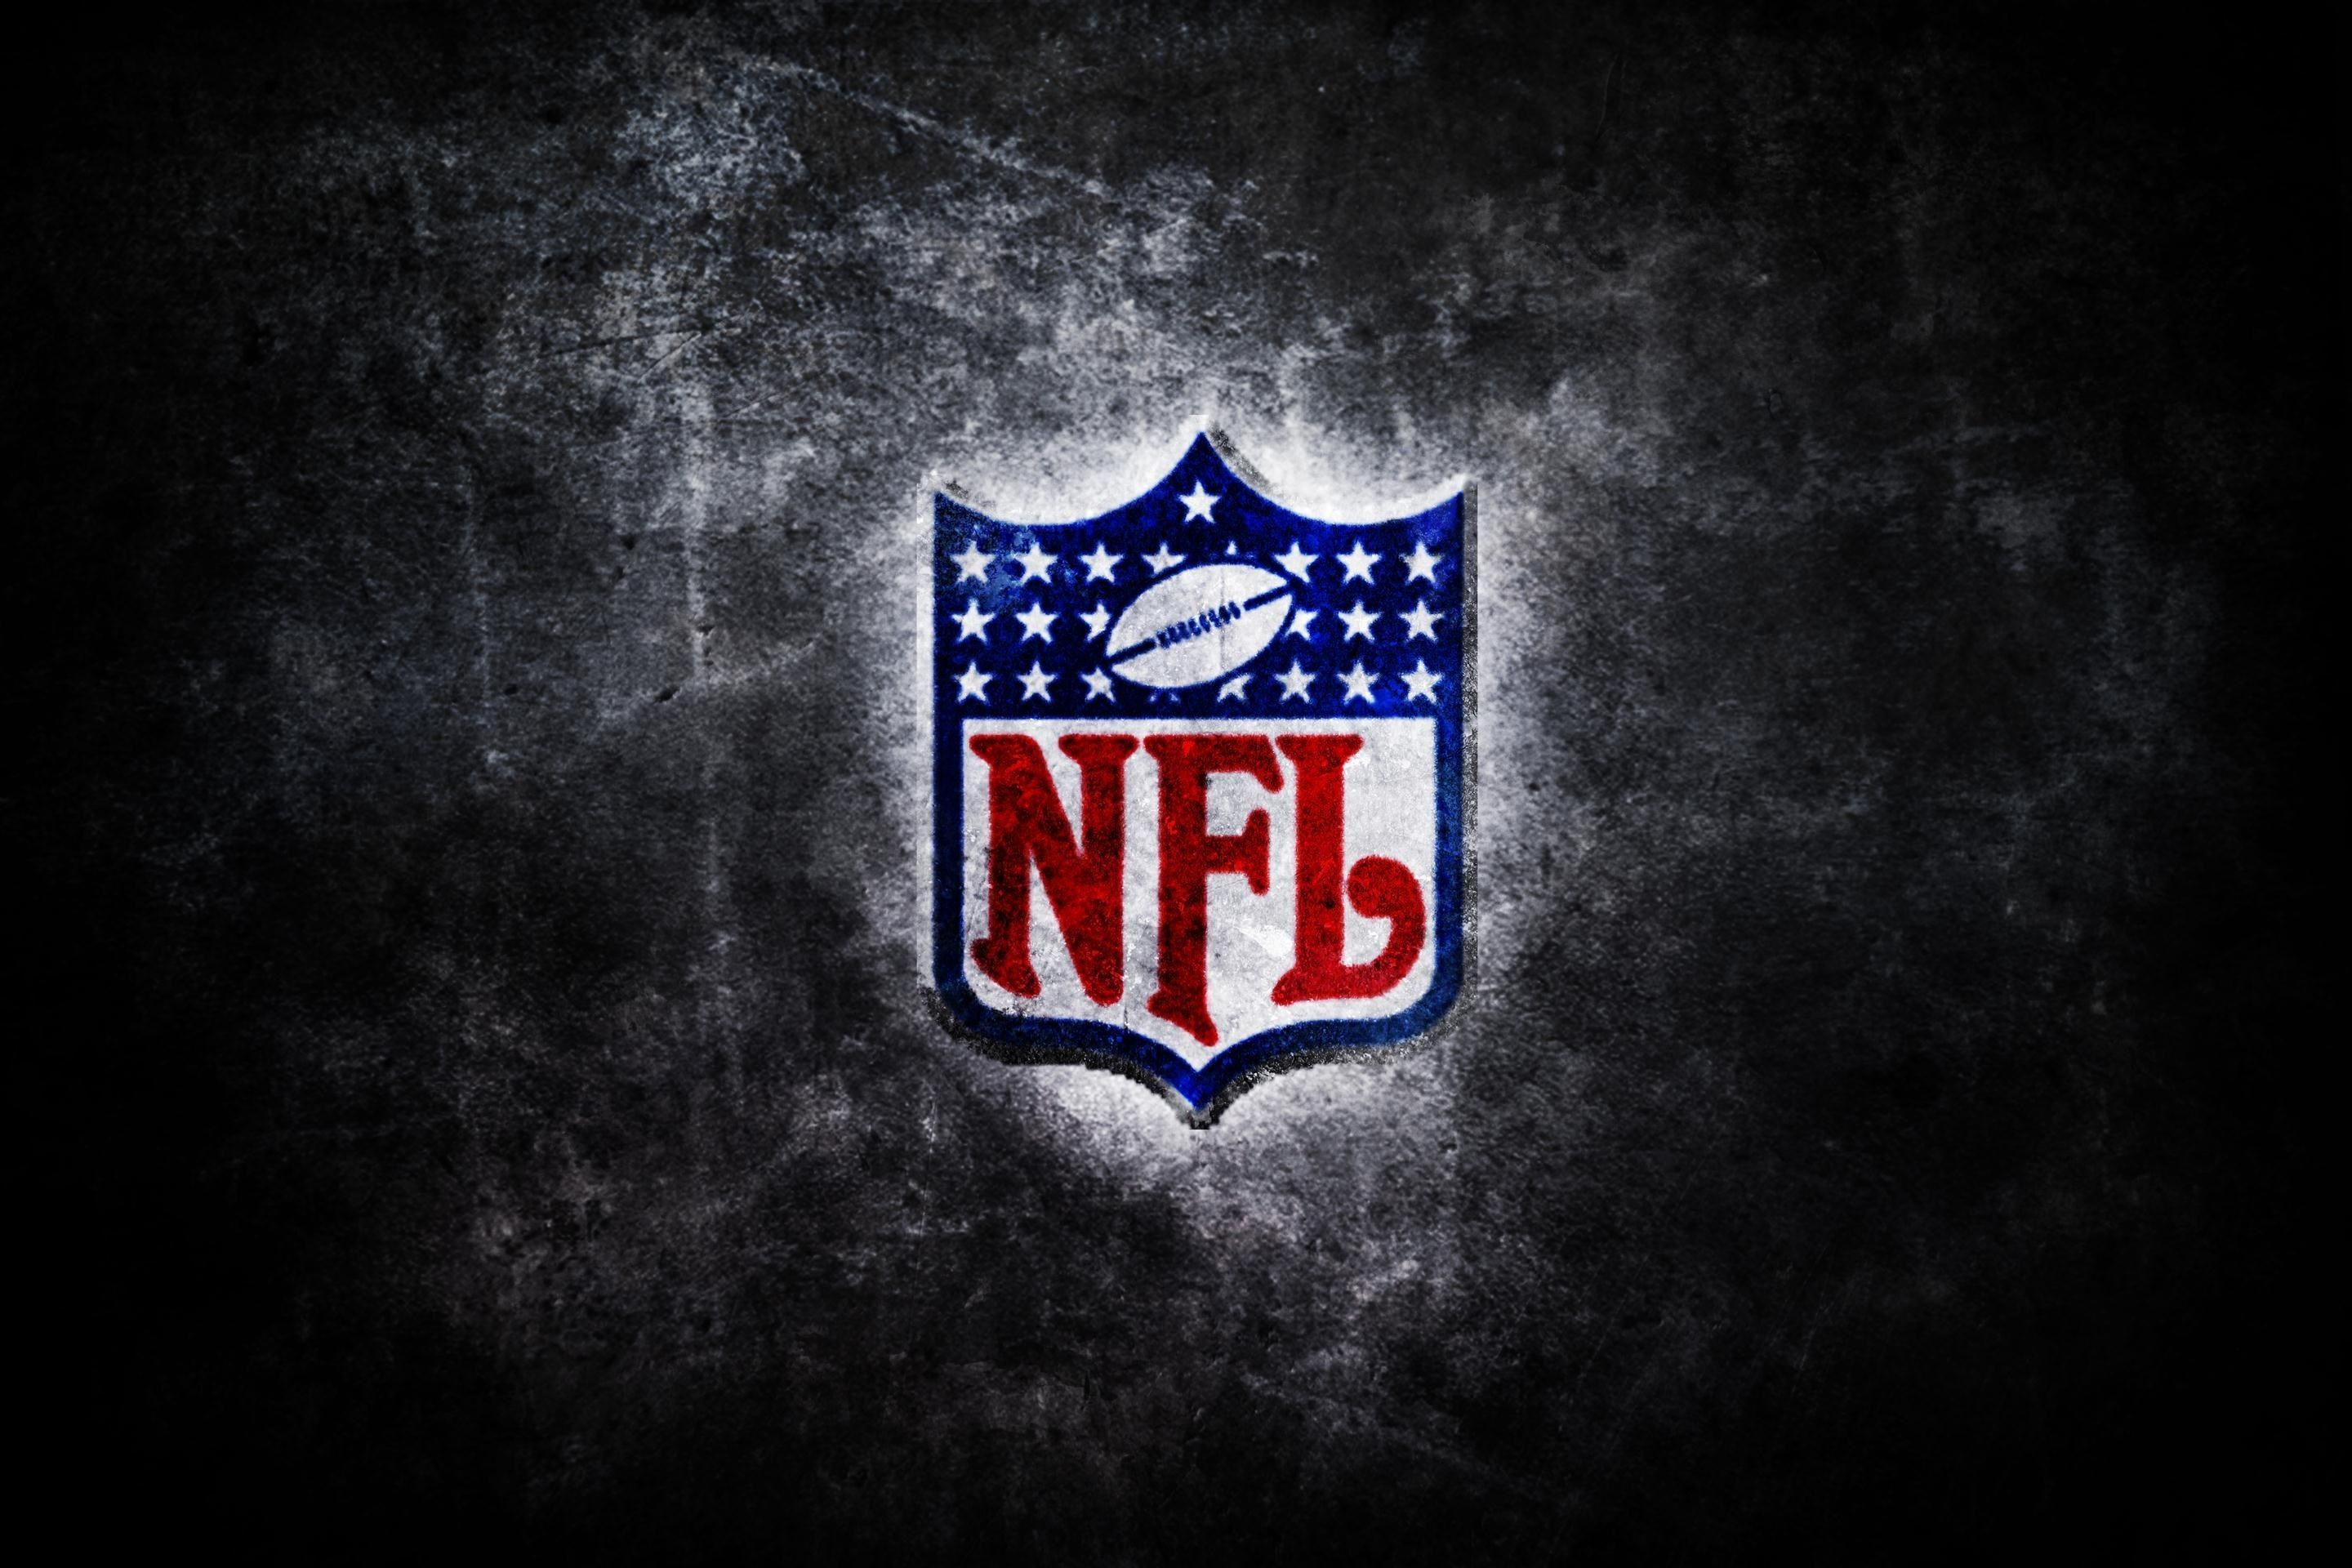 Live Broadcast Between Miami Dolphins vs Minnesota Vikings on Thursday,  August 31, 2017 at 8:00 PM, Et With The Name of USA Football Competition  NFL 2017 …